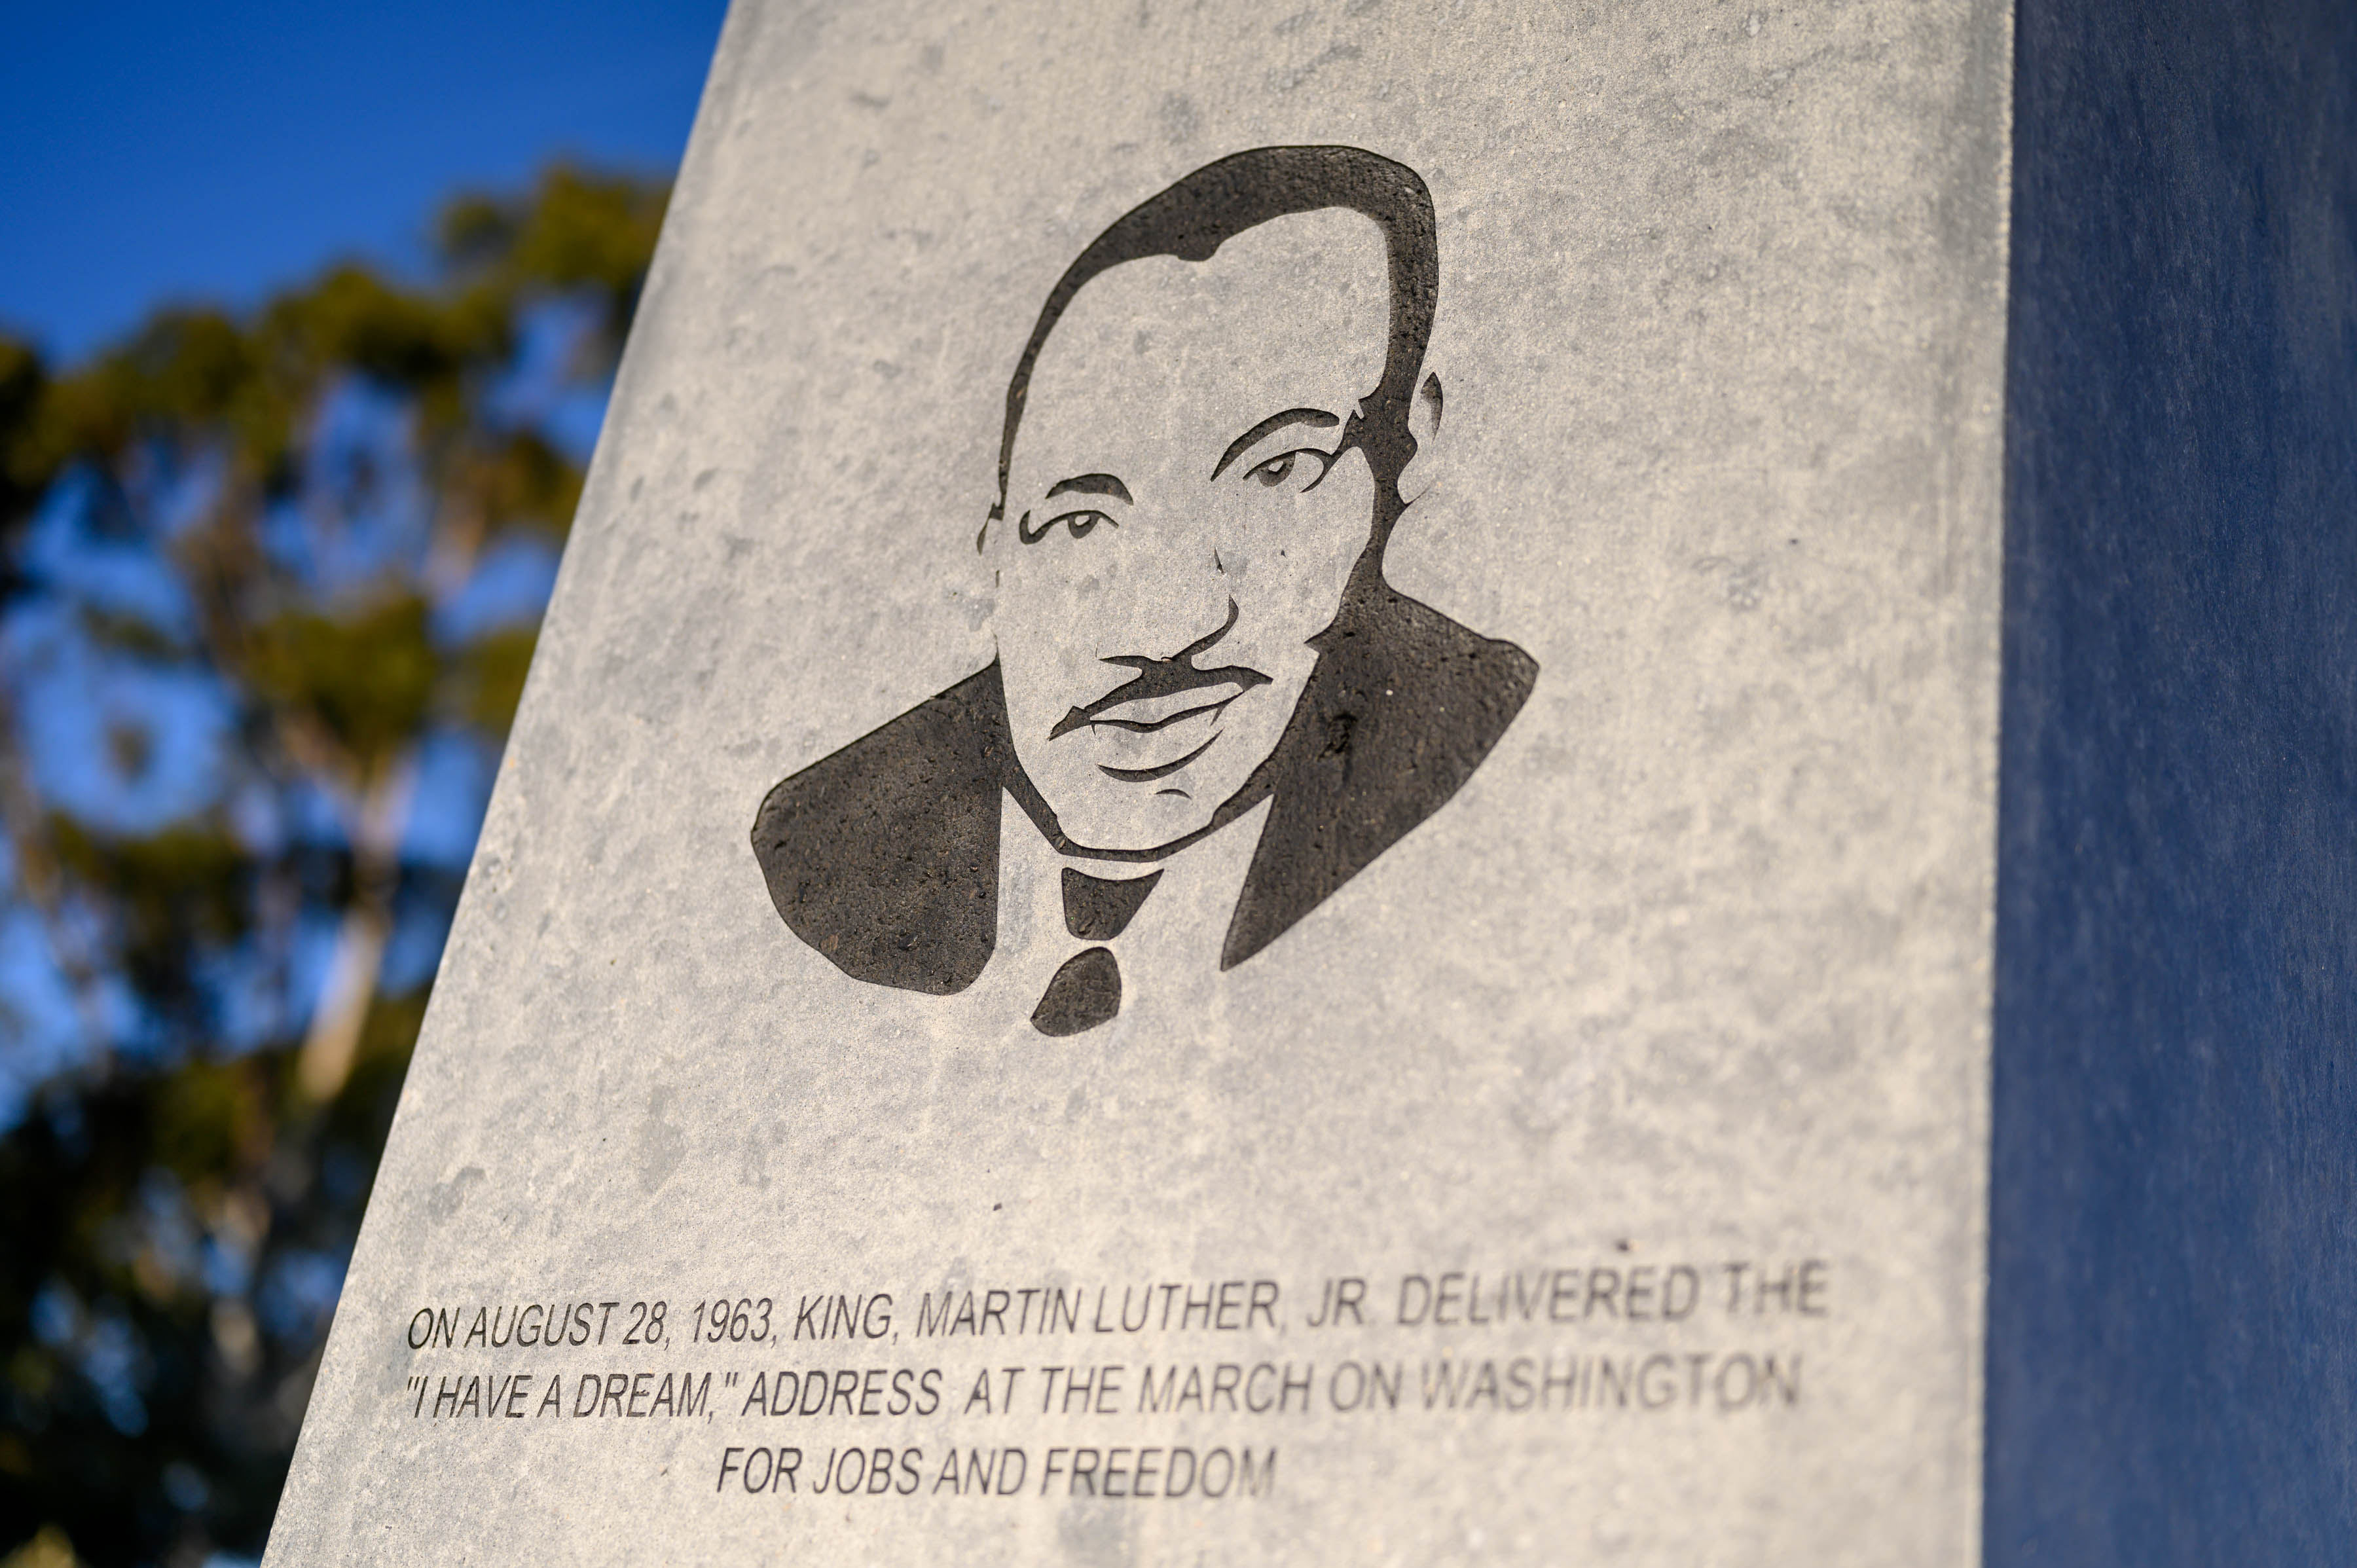 The obelisk at the Dr. Martin Luther King Jr. Memorial Tree Grove is seen at Kenneth Hahn State Recreation Area on Jan. 17 in Los Angeles, California. (Emma McIntyre/Getty Images)